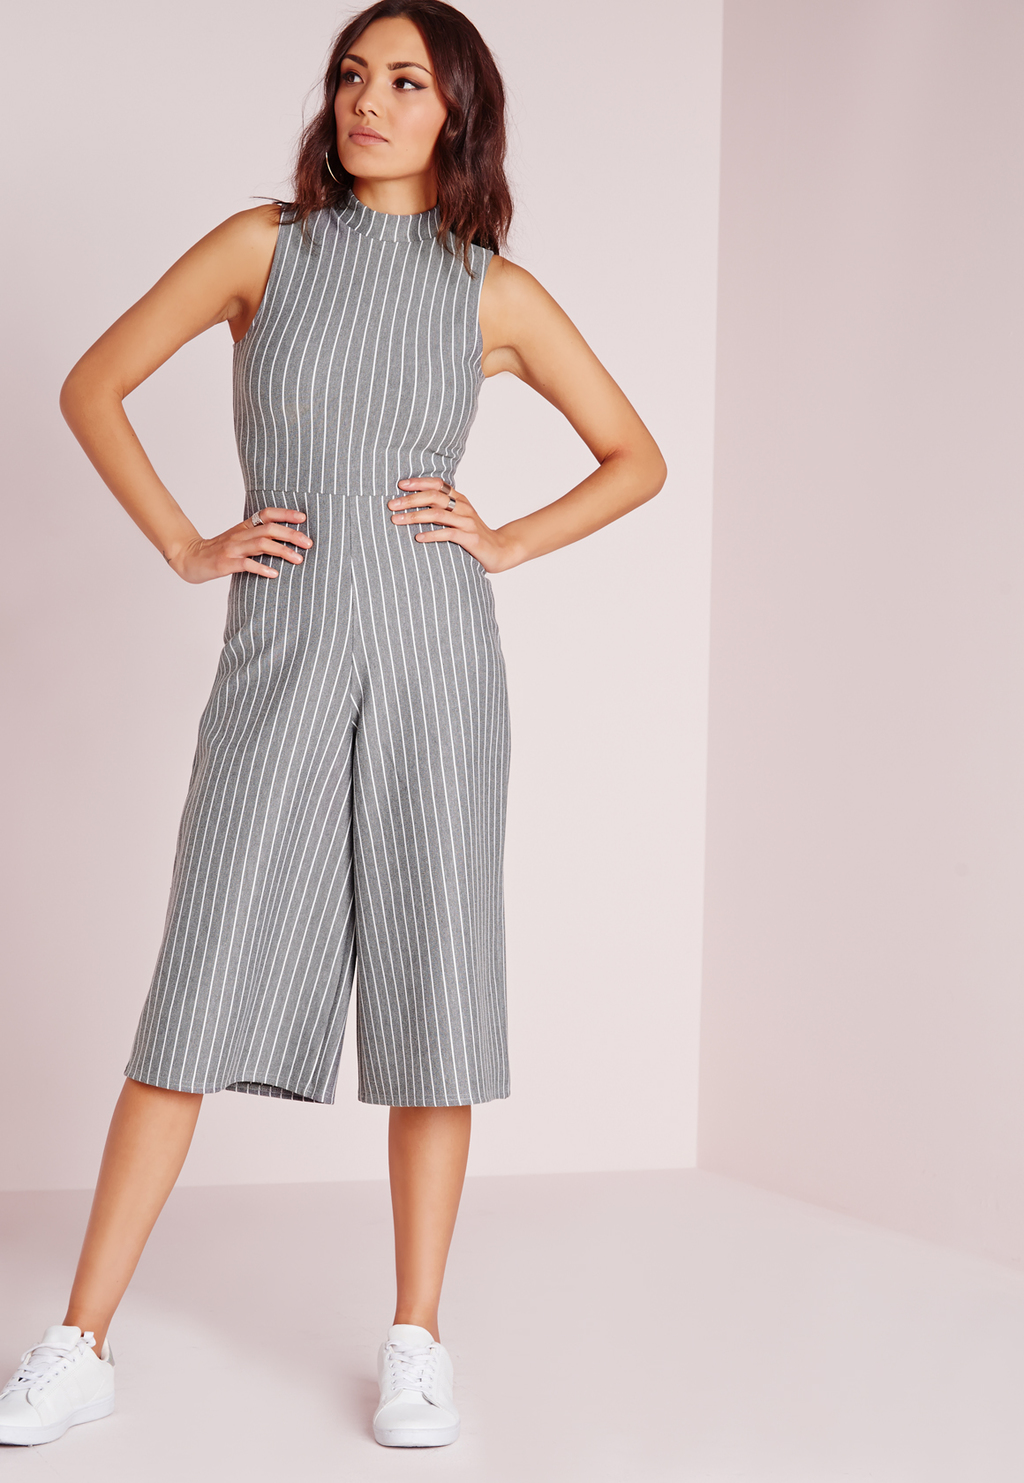 High Neck Pinstripe Culotte Jumpsuit Grey, Grey - fit: tailored/fitted; pattern: pinstripe; predominant colour: light grey; length: calf length; fibres: polyester/polyamide - stretch; neckline: crew; sleeve length: sleeveless; sleeve style: standard; style: jumpsuit; pattern type: fabric; pattern size: standard; texture group: other - light to midweight; occasions: creative work; season: s/s 2016; wardrobe: highlight